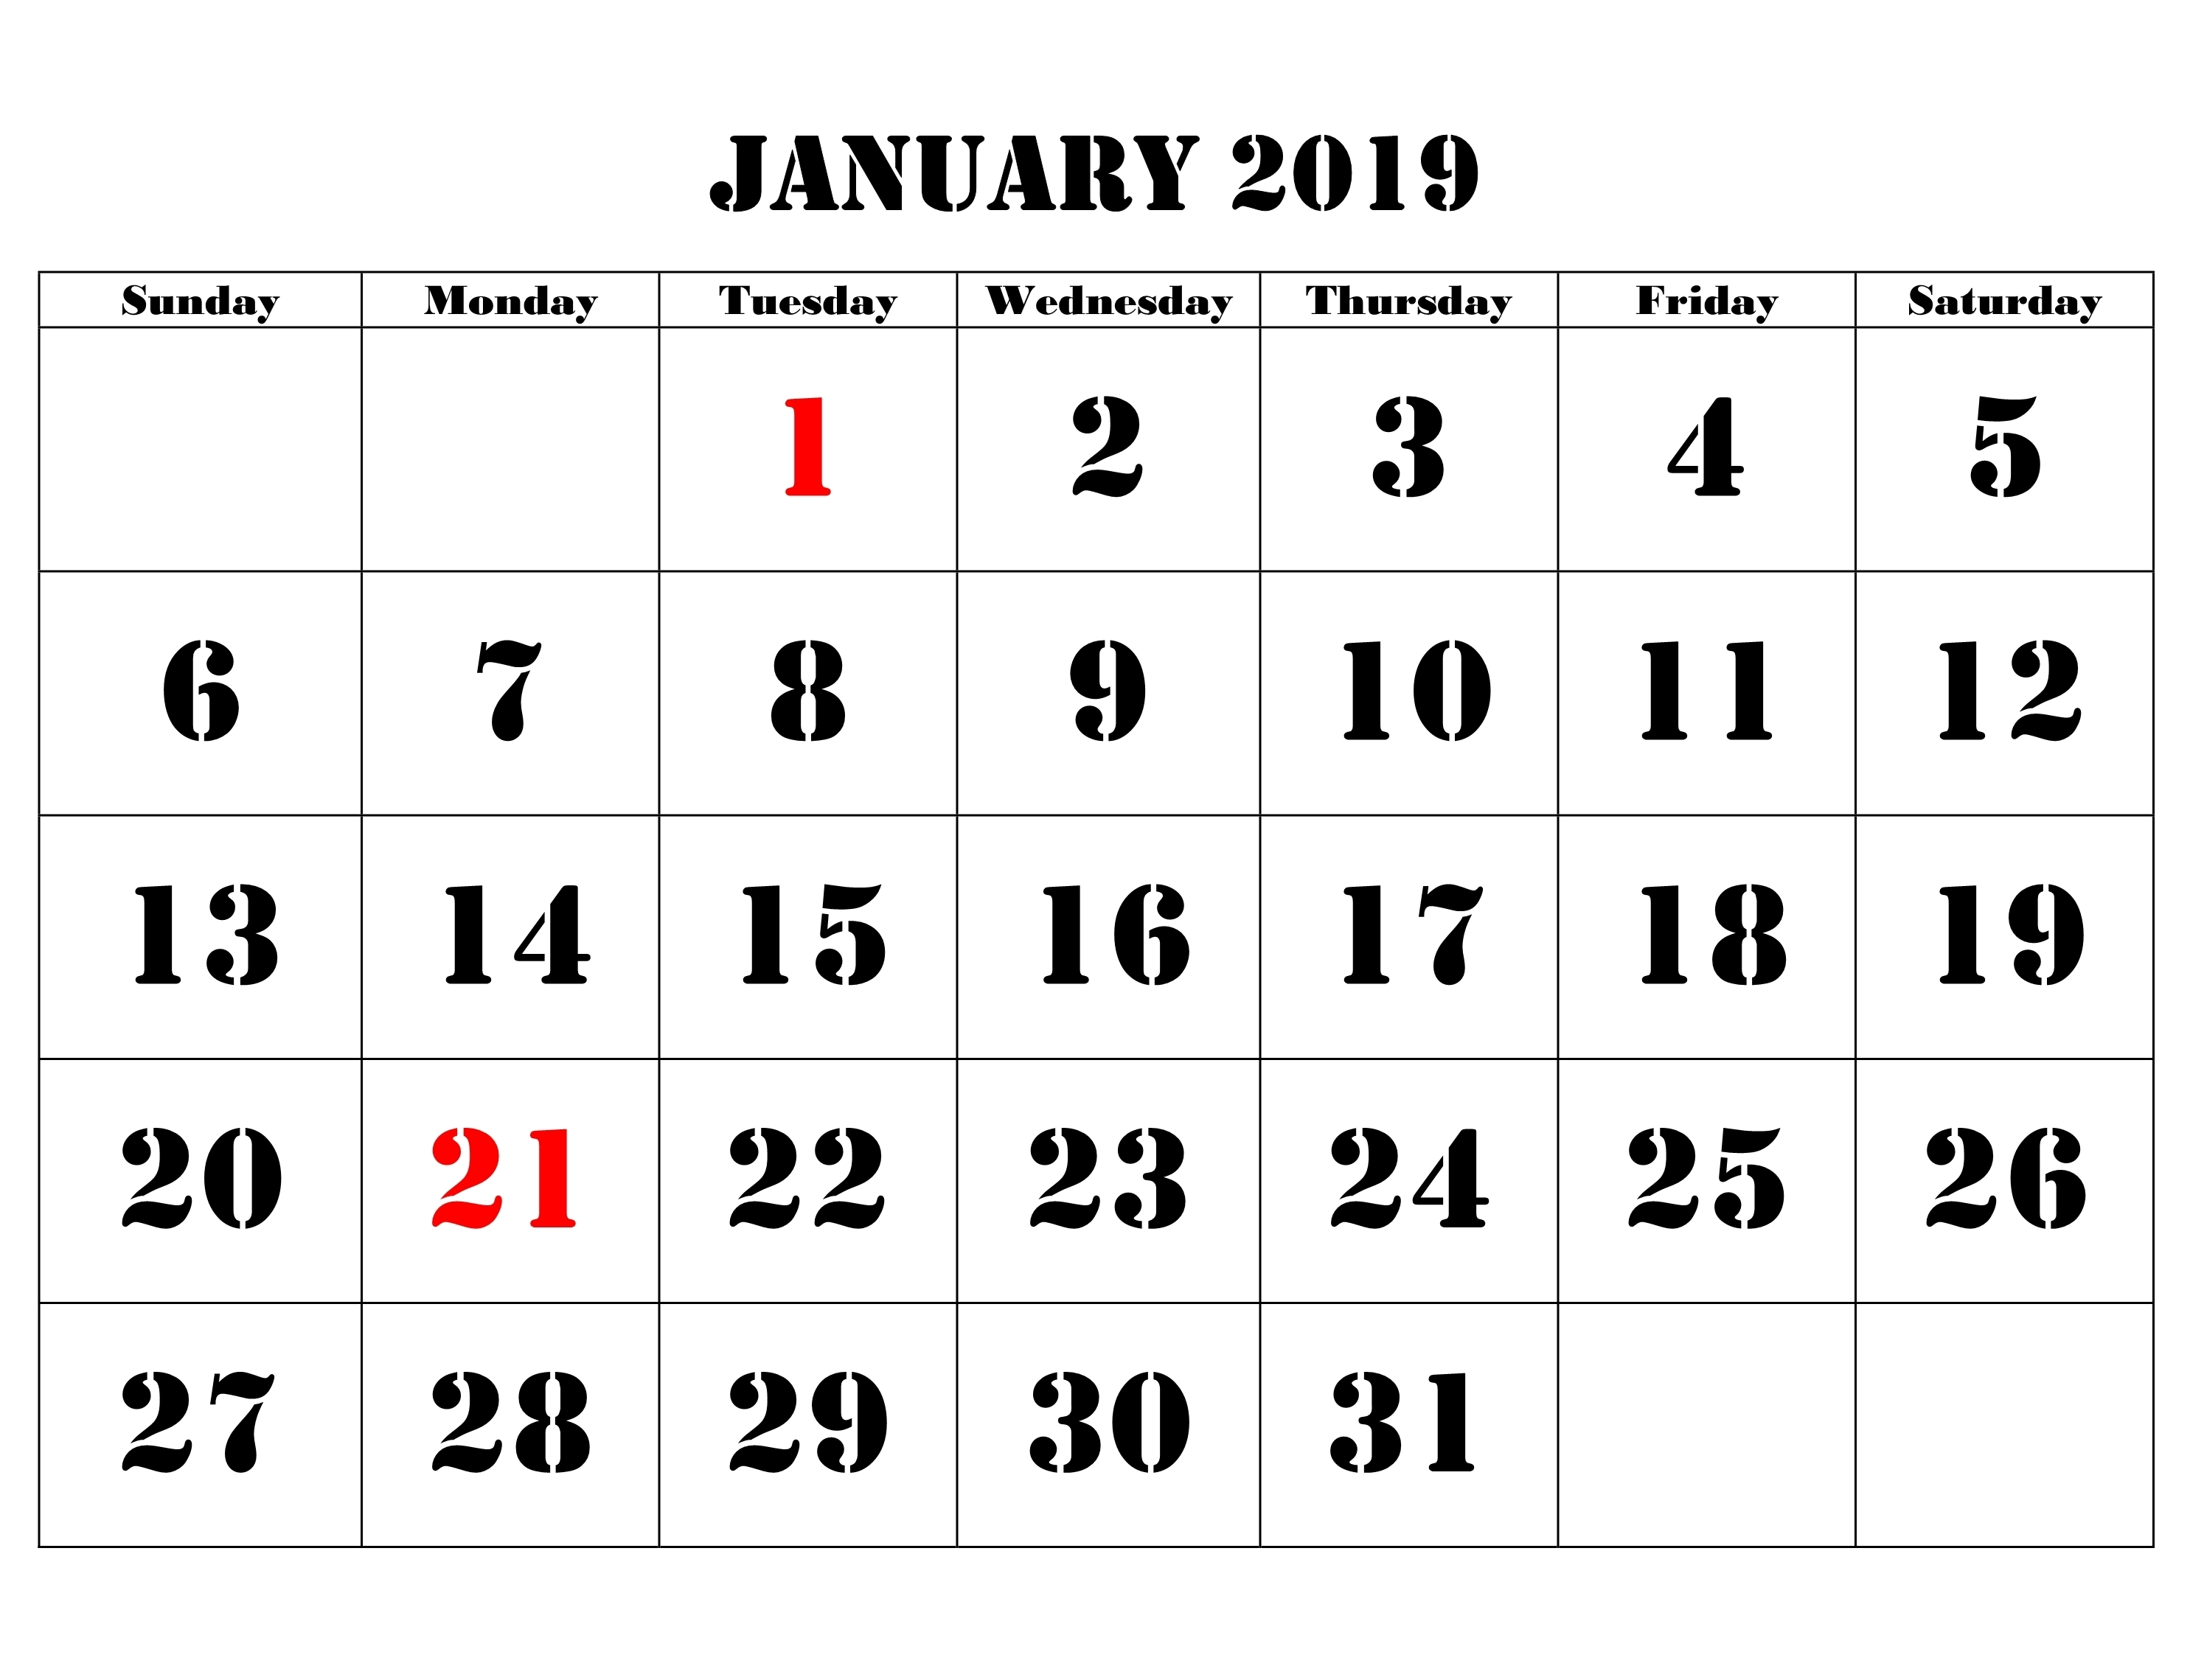 printable calendar january 2019 monthly printable calendar 2018::January 2019 Monthly Calendar